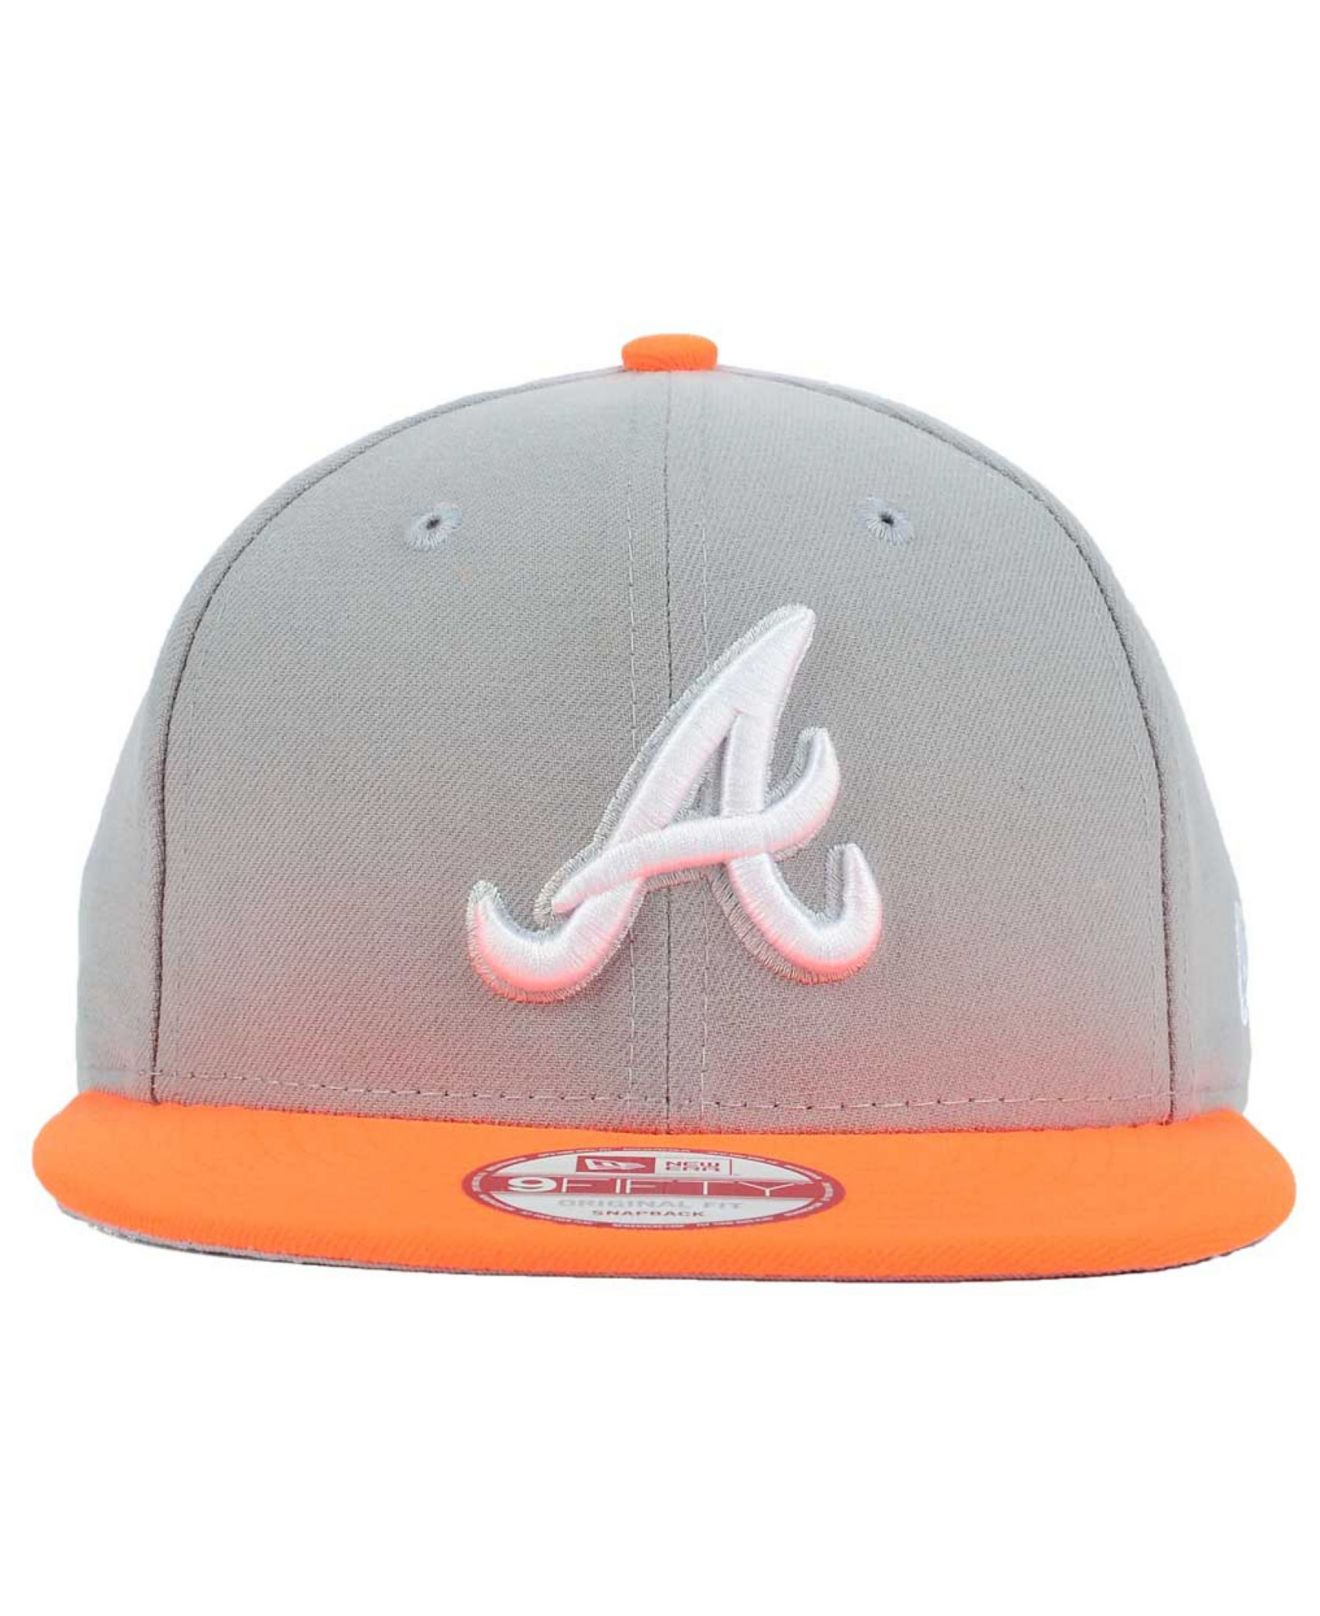 wholesale dealer b1c62 890c0 hot atlanta braves game hats queens 52be9 c28b8